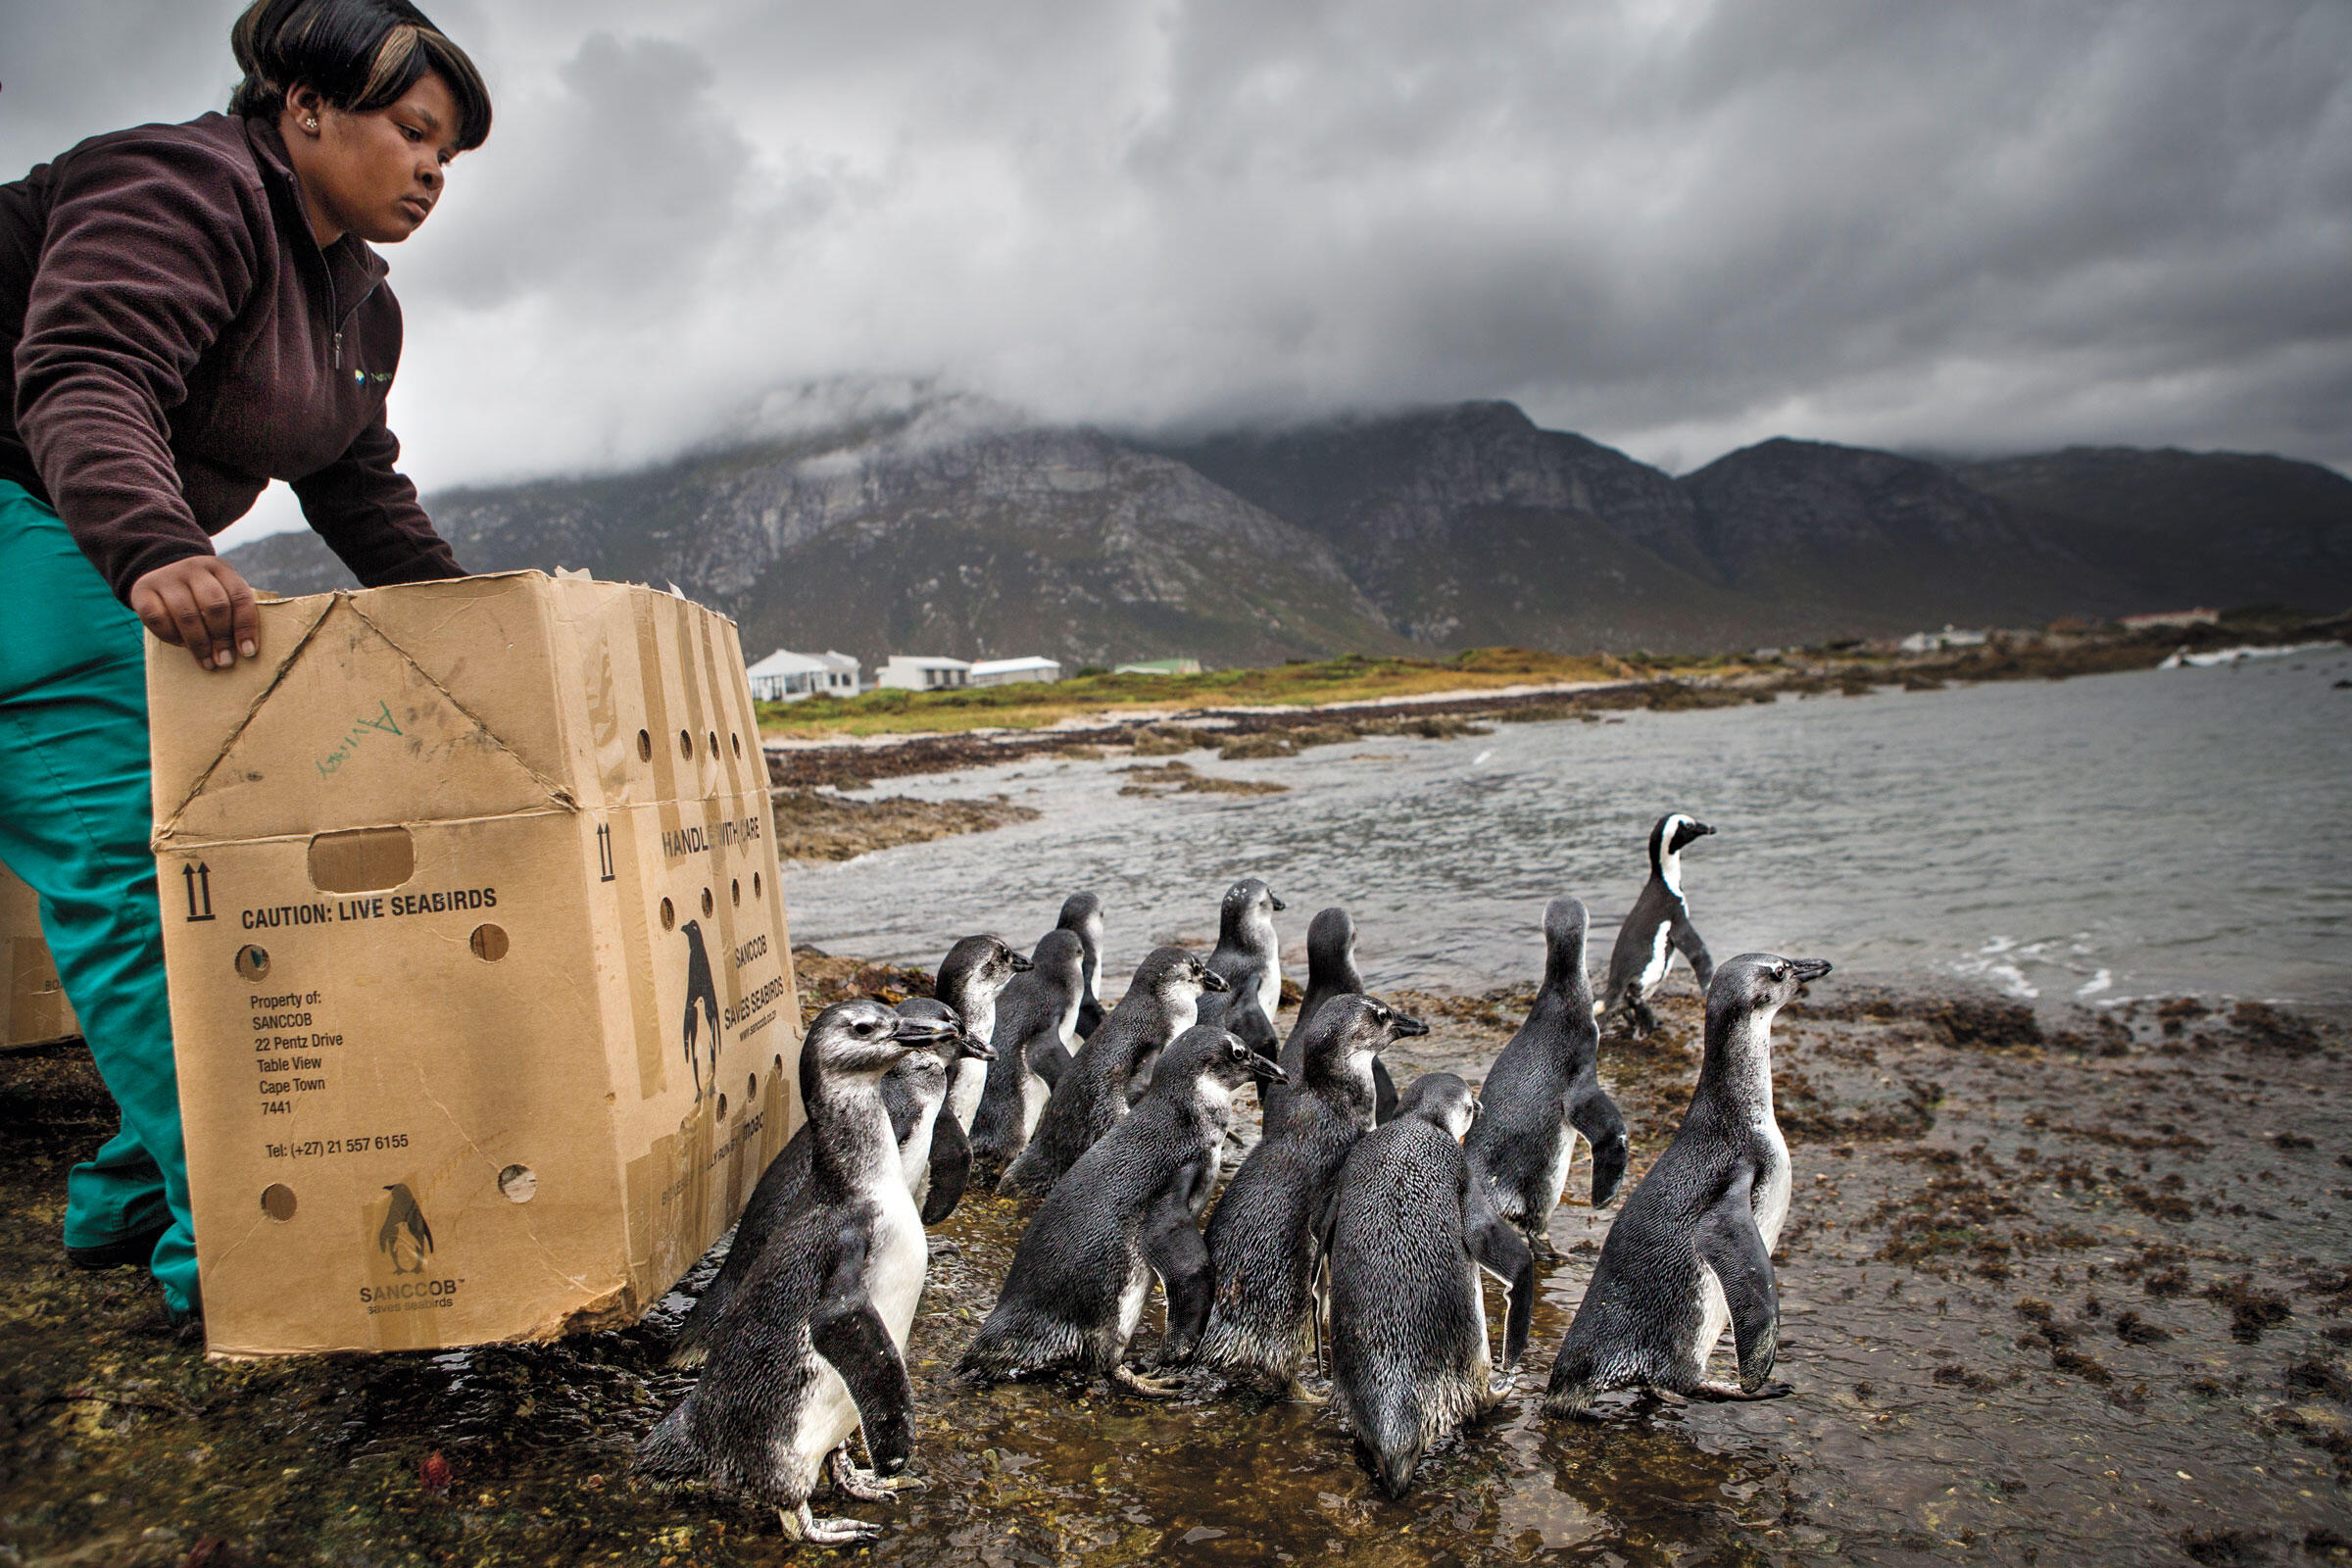 Stony Point field ranger Nomveleli Nkantini encourages penguins to venture into the water. Alexia Webster